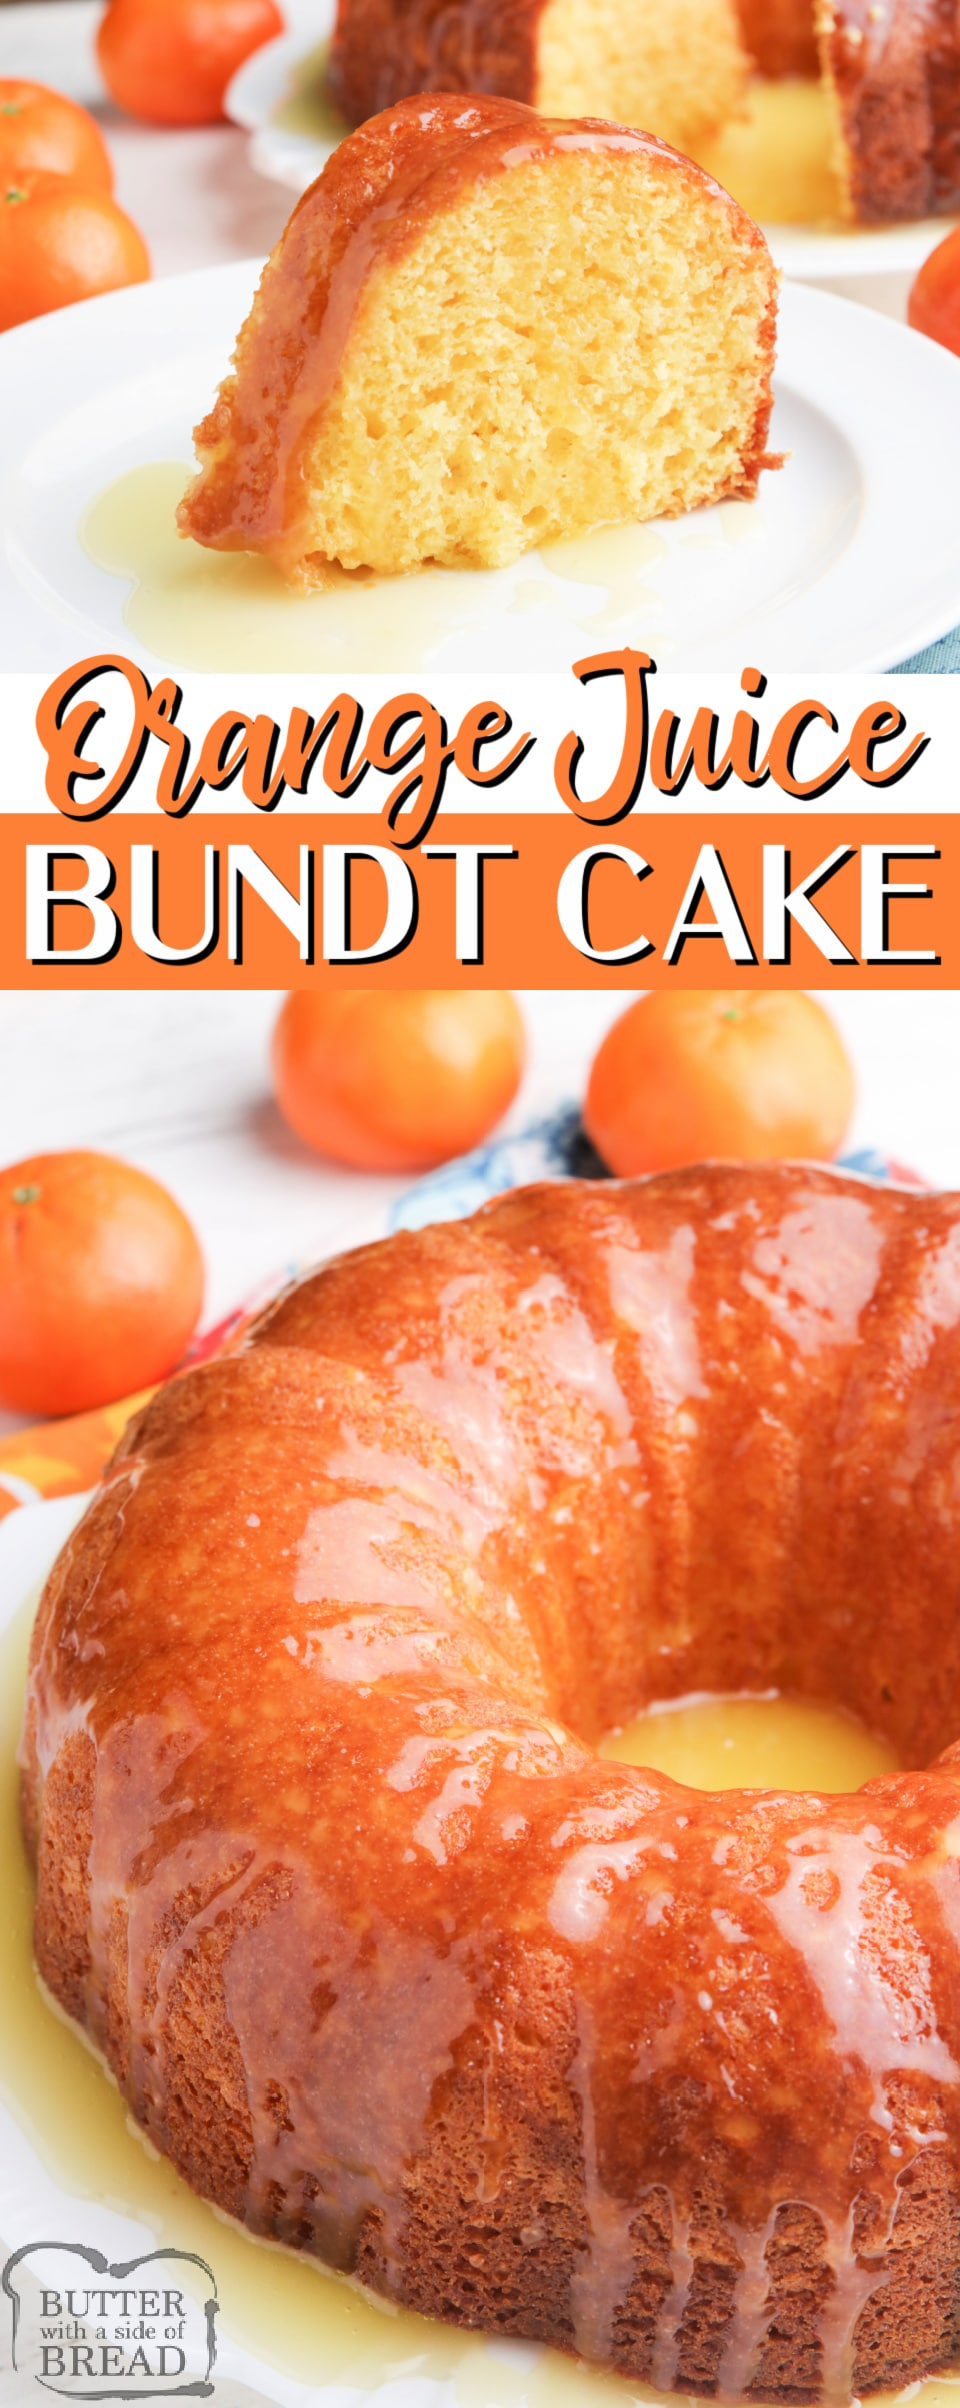 Orange Juice Bundt Cake made with a cake mix, orange juice and a few other basic ingredients. Topped with a buttery orange glaze, this delicious orange juice cake recipe is absolutely decadent!